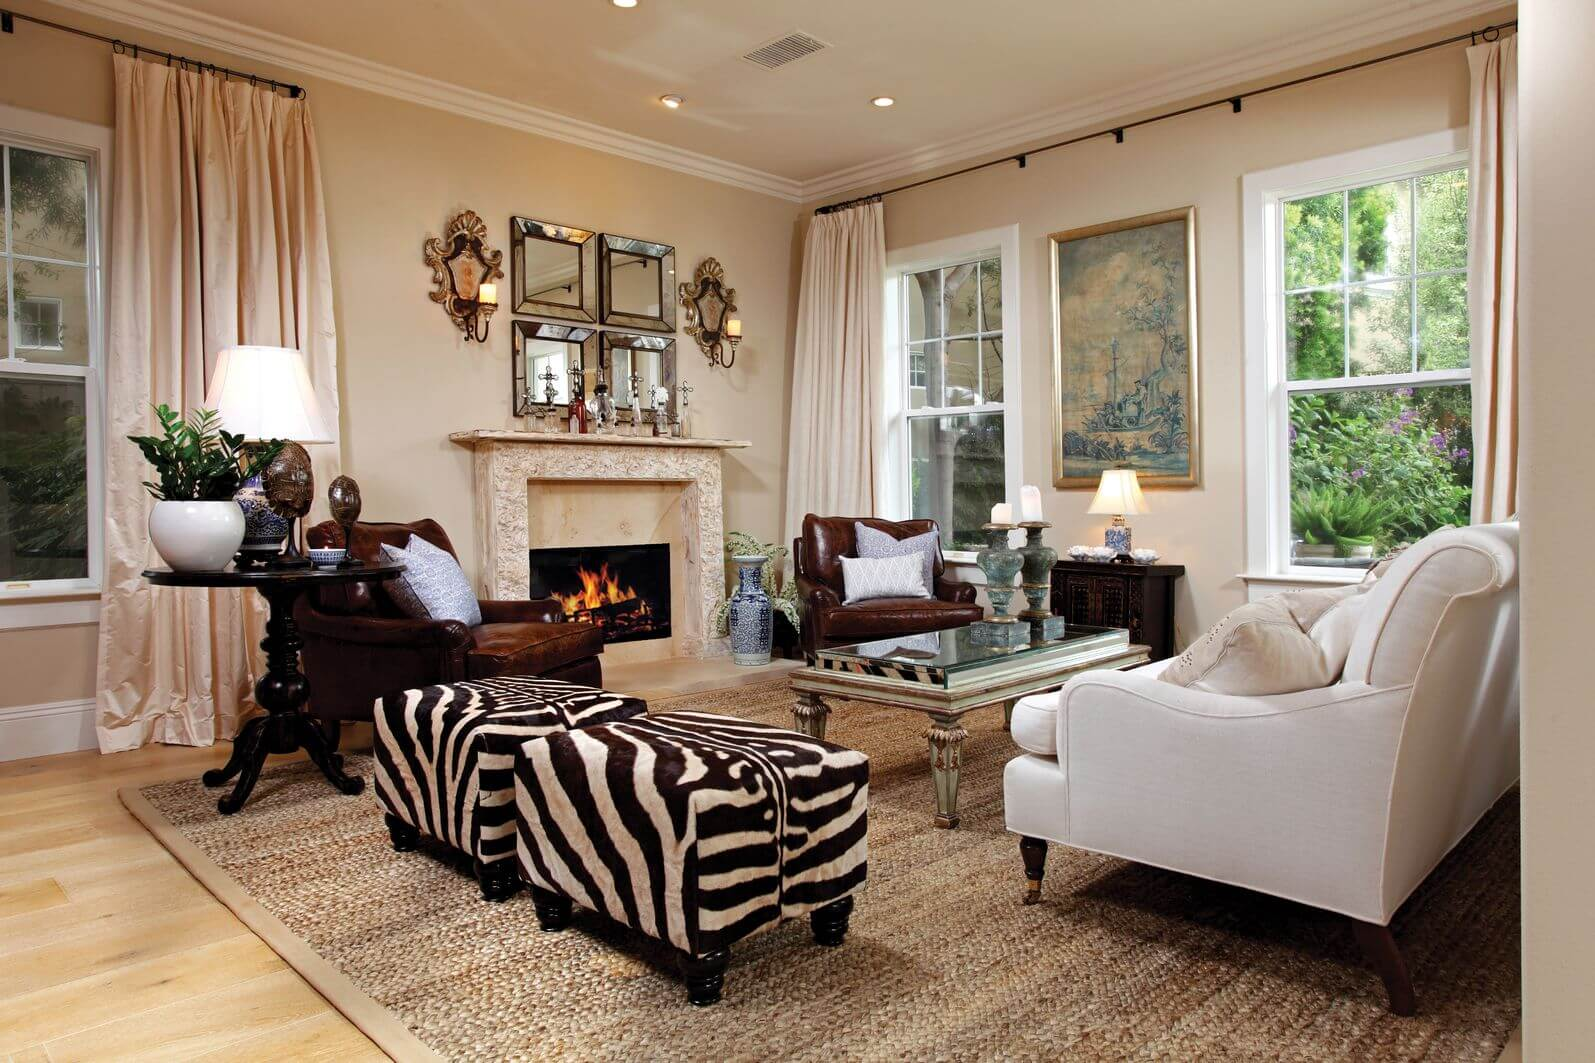 Living Room with Zebra Print Chairs